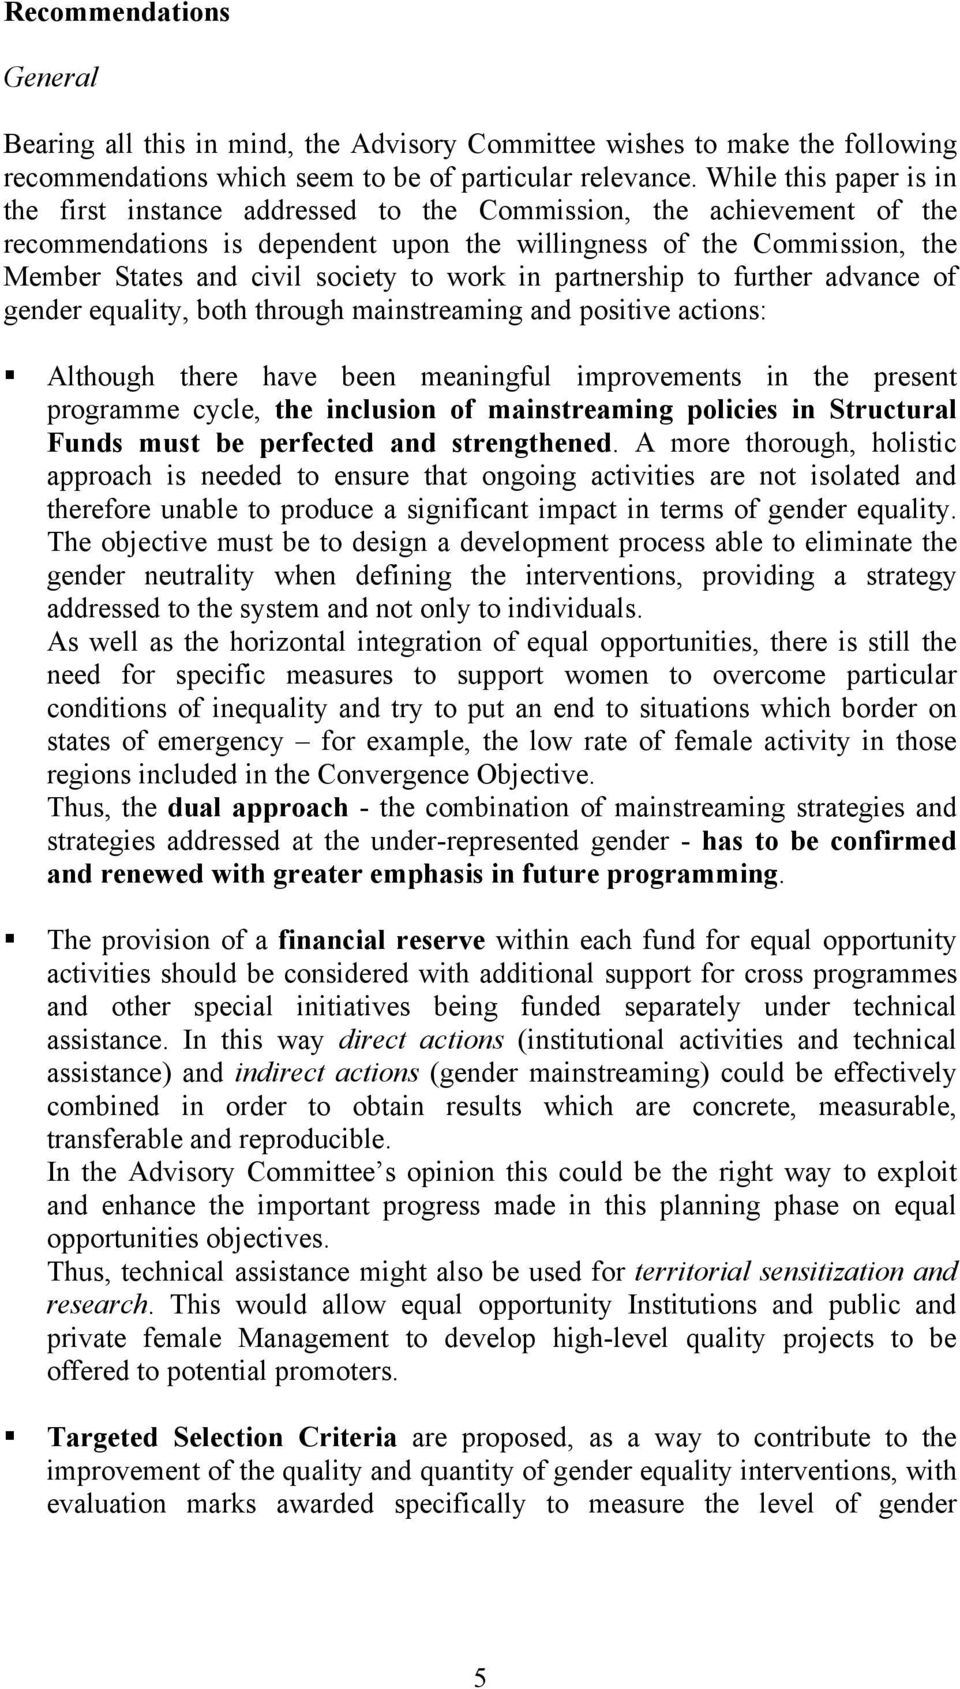 to work in partnership to further advance of gender equality, both through mainstreaming and positive actions: Although there have been meaningful improvements in the present programme cycle, the